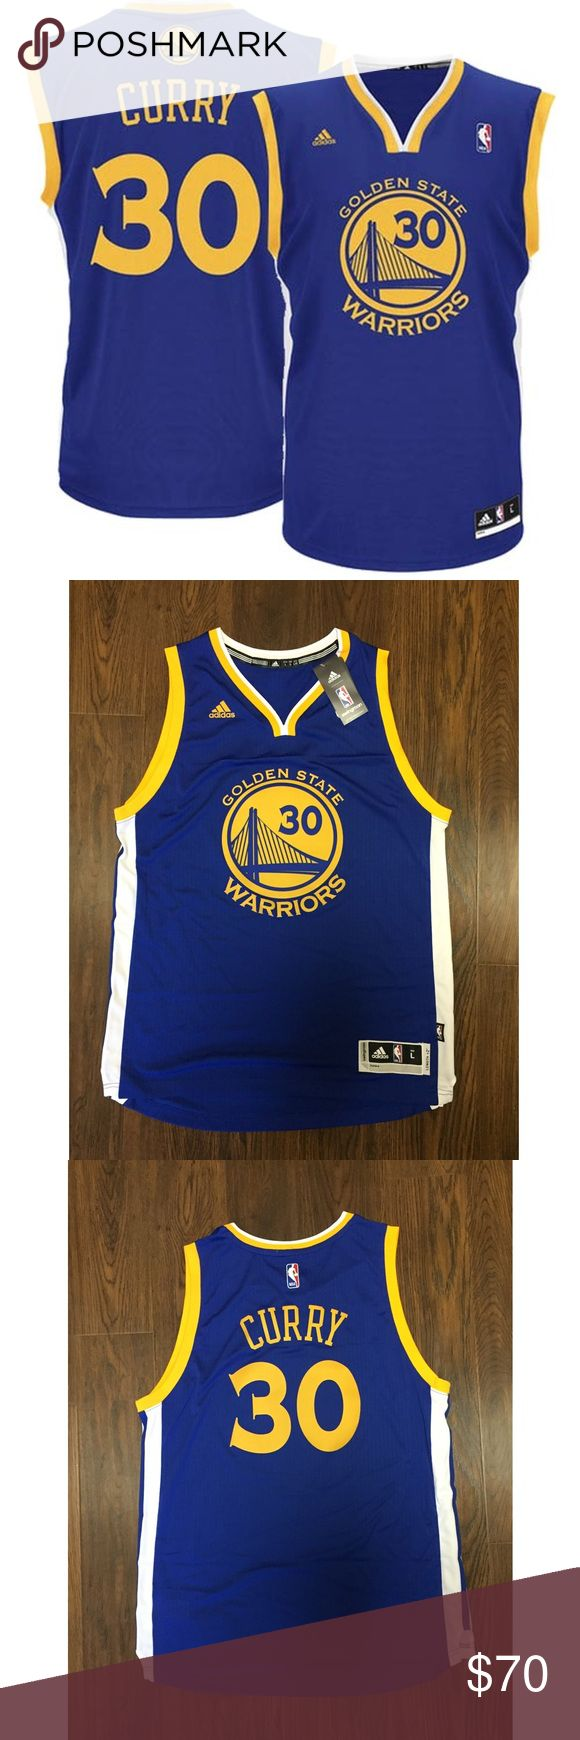 Adidas Swingman Steph Curry Mens Basketball Jersey Brand : Adidas   Team : Golden State Warriors   Player : Steph Curry   Color : Blue/Yellow   100% AUTHENTIC   BRAND NEW WITH TAGS adidas Shirts Tank Tops